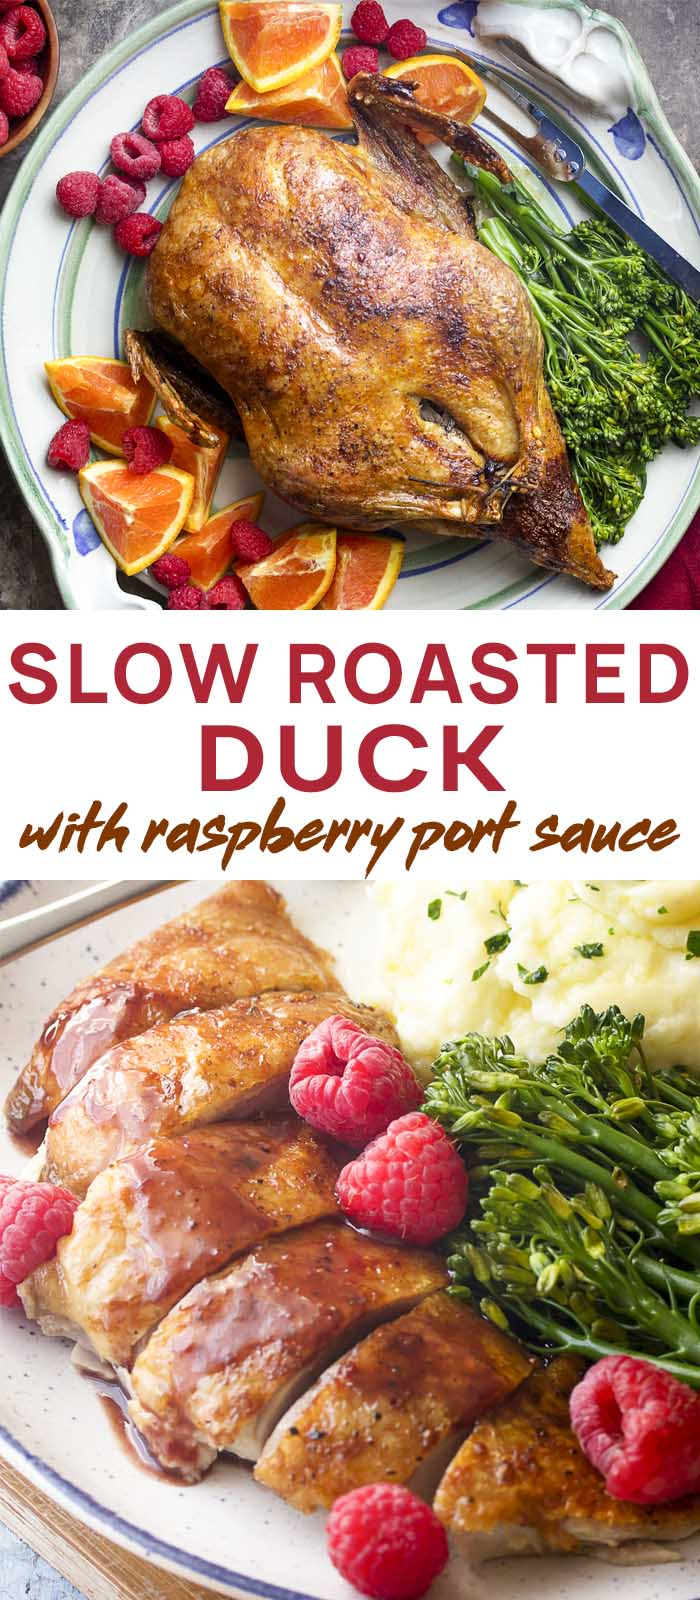 Whole duck on a platter and sliced breast on a plate with text overlay - Slow Roasted Duck.